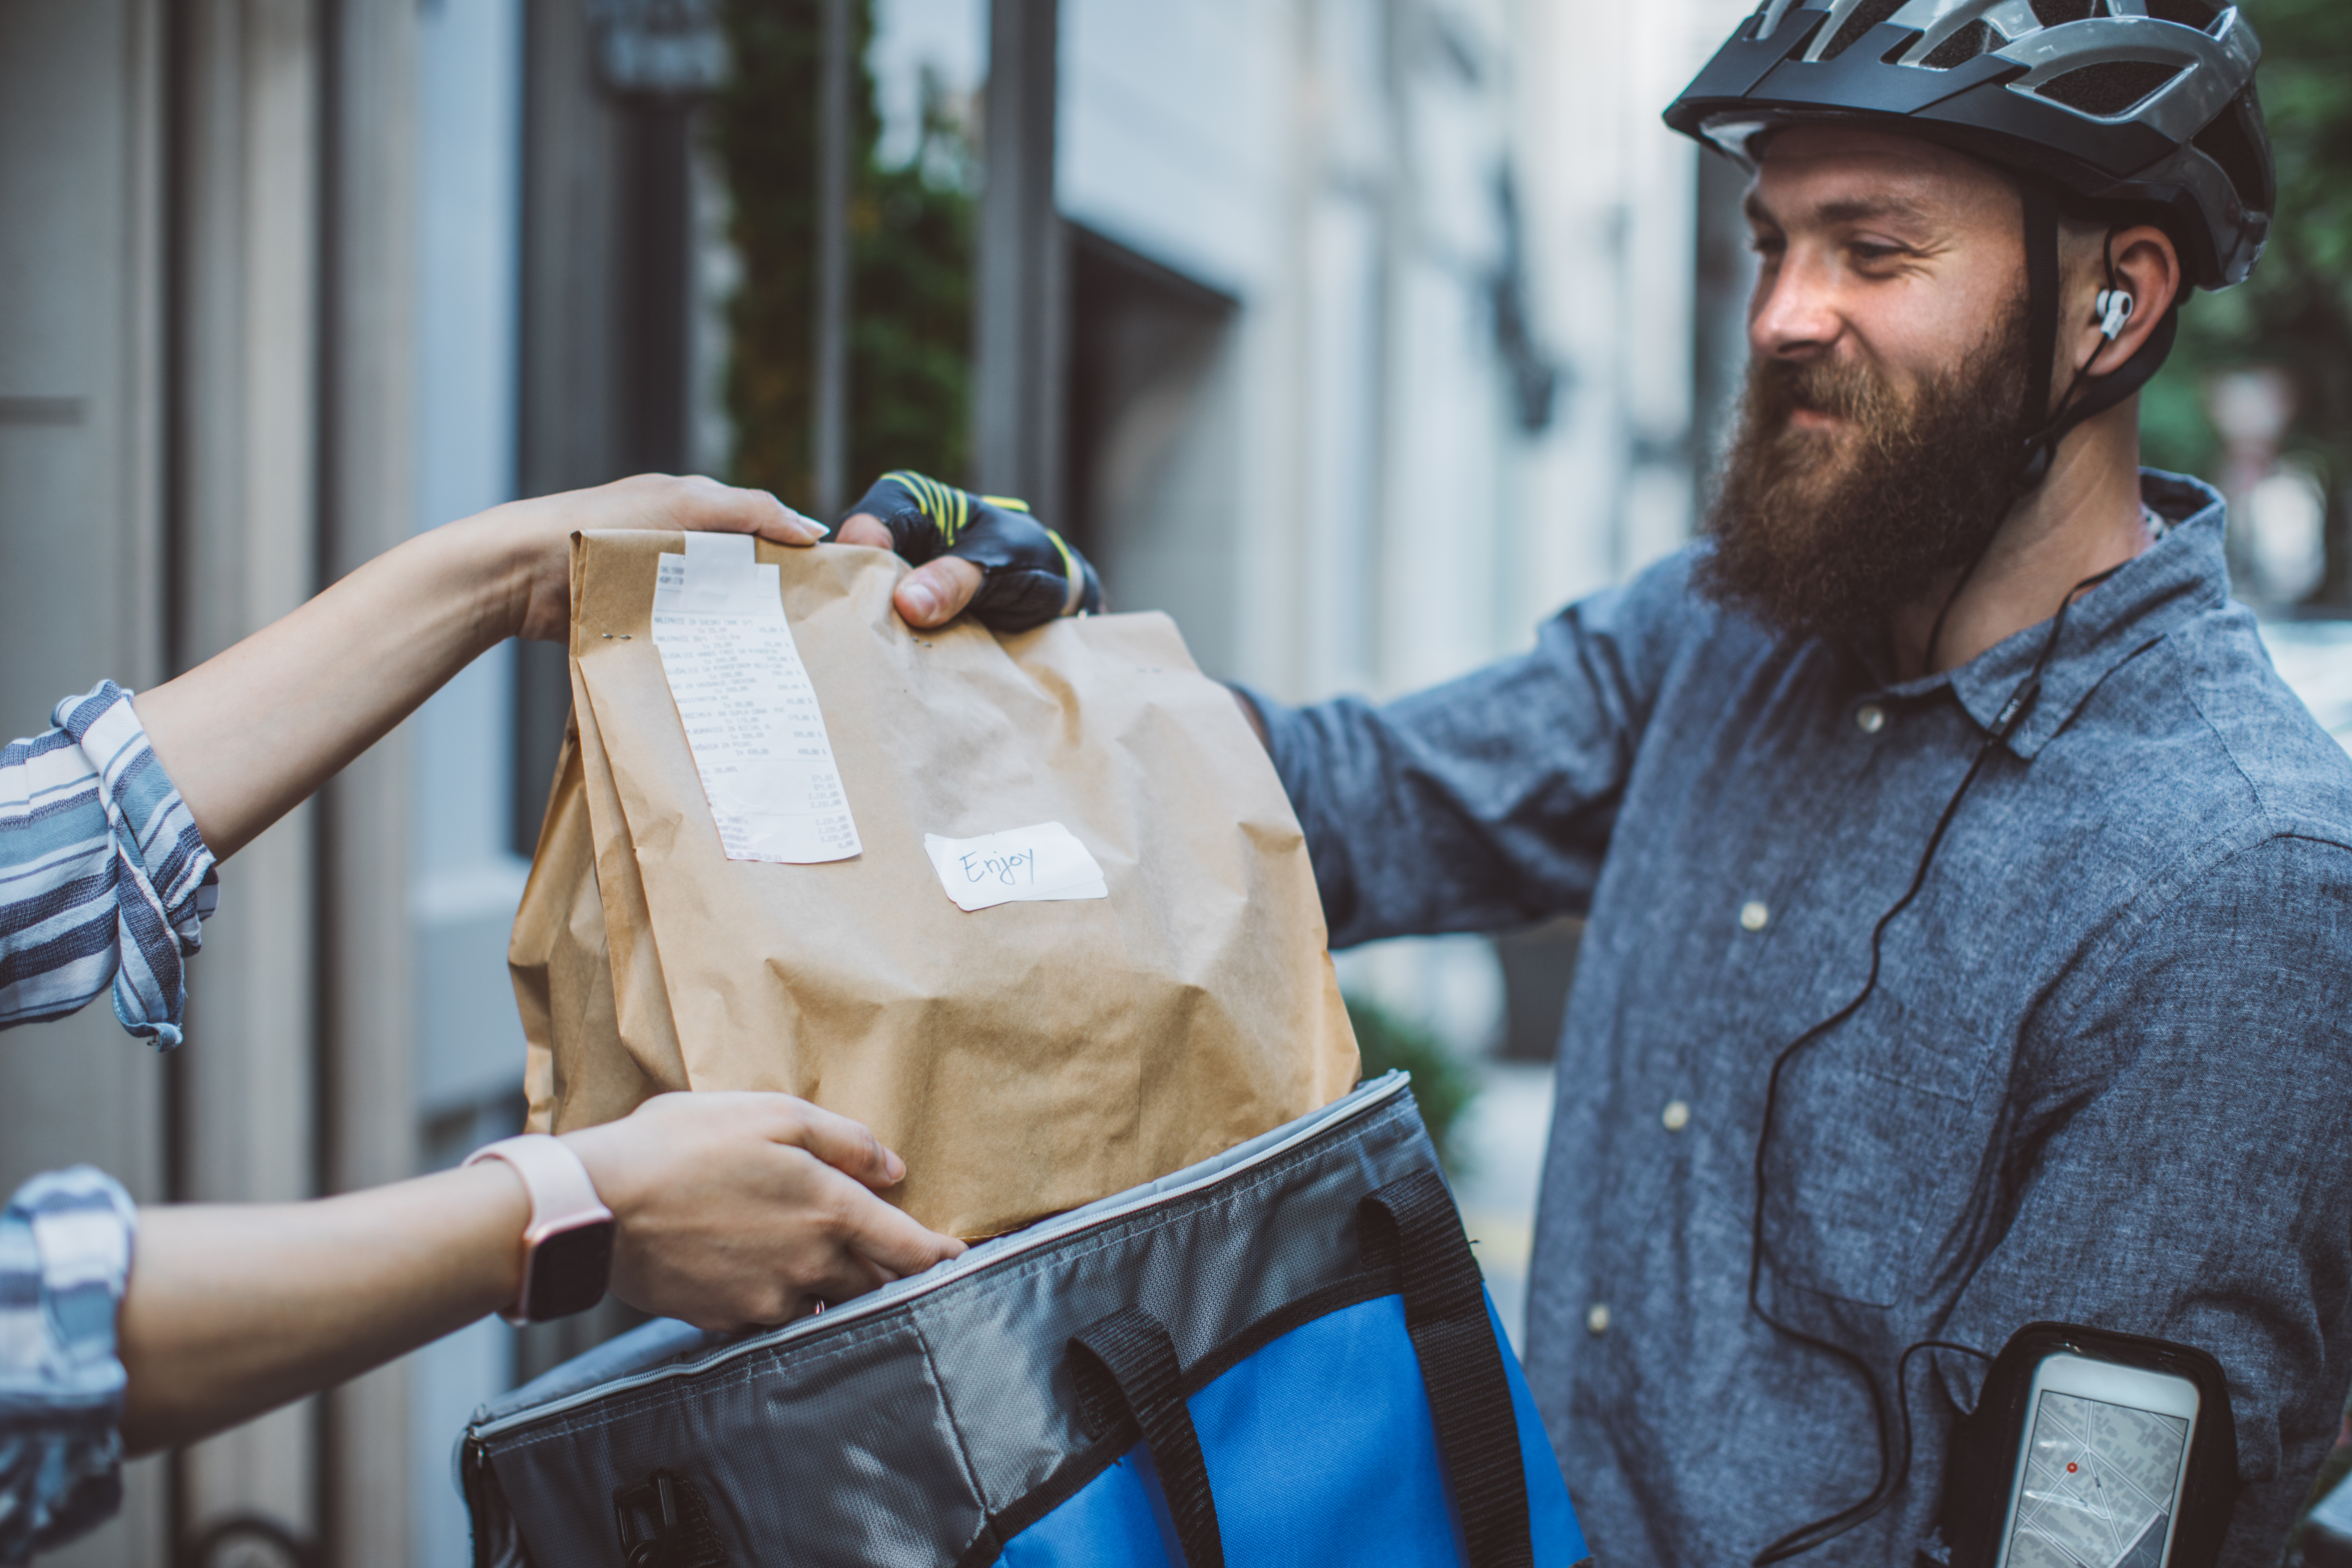 A delivery worker in a bike helmet handing a bag of food to a customer.